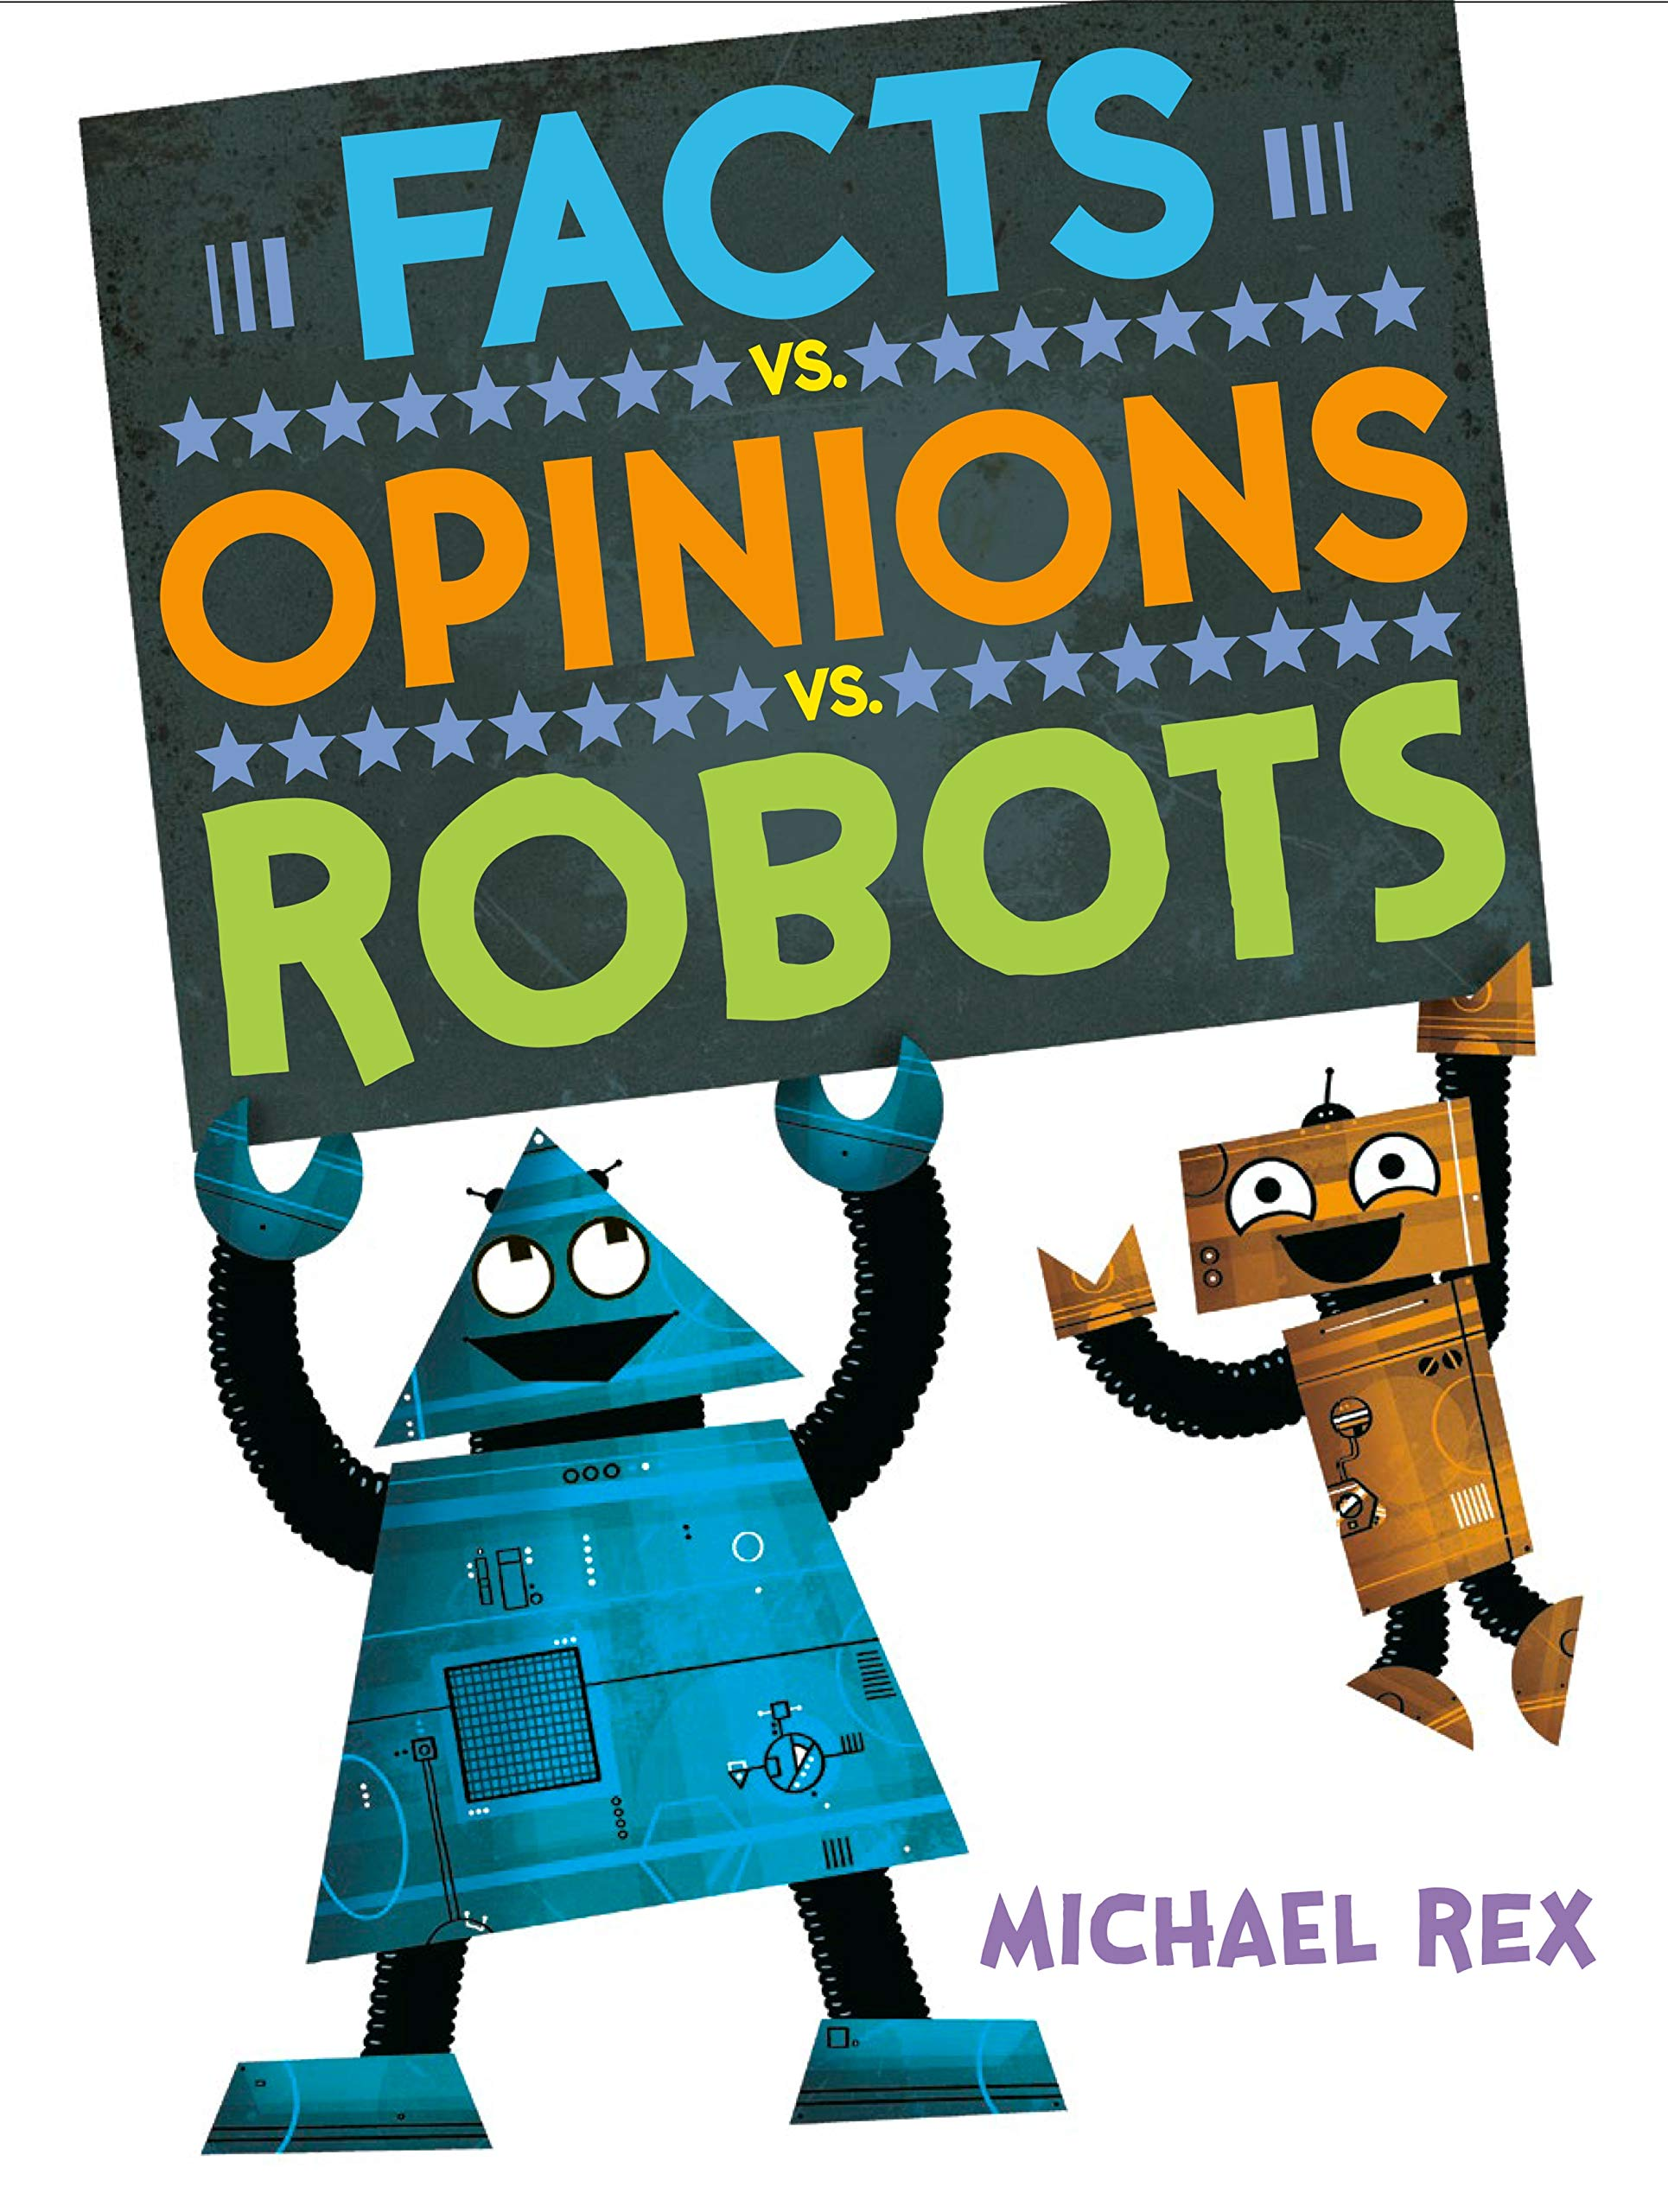 Image result for facts vs opinions vs robots